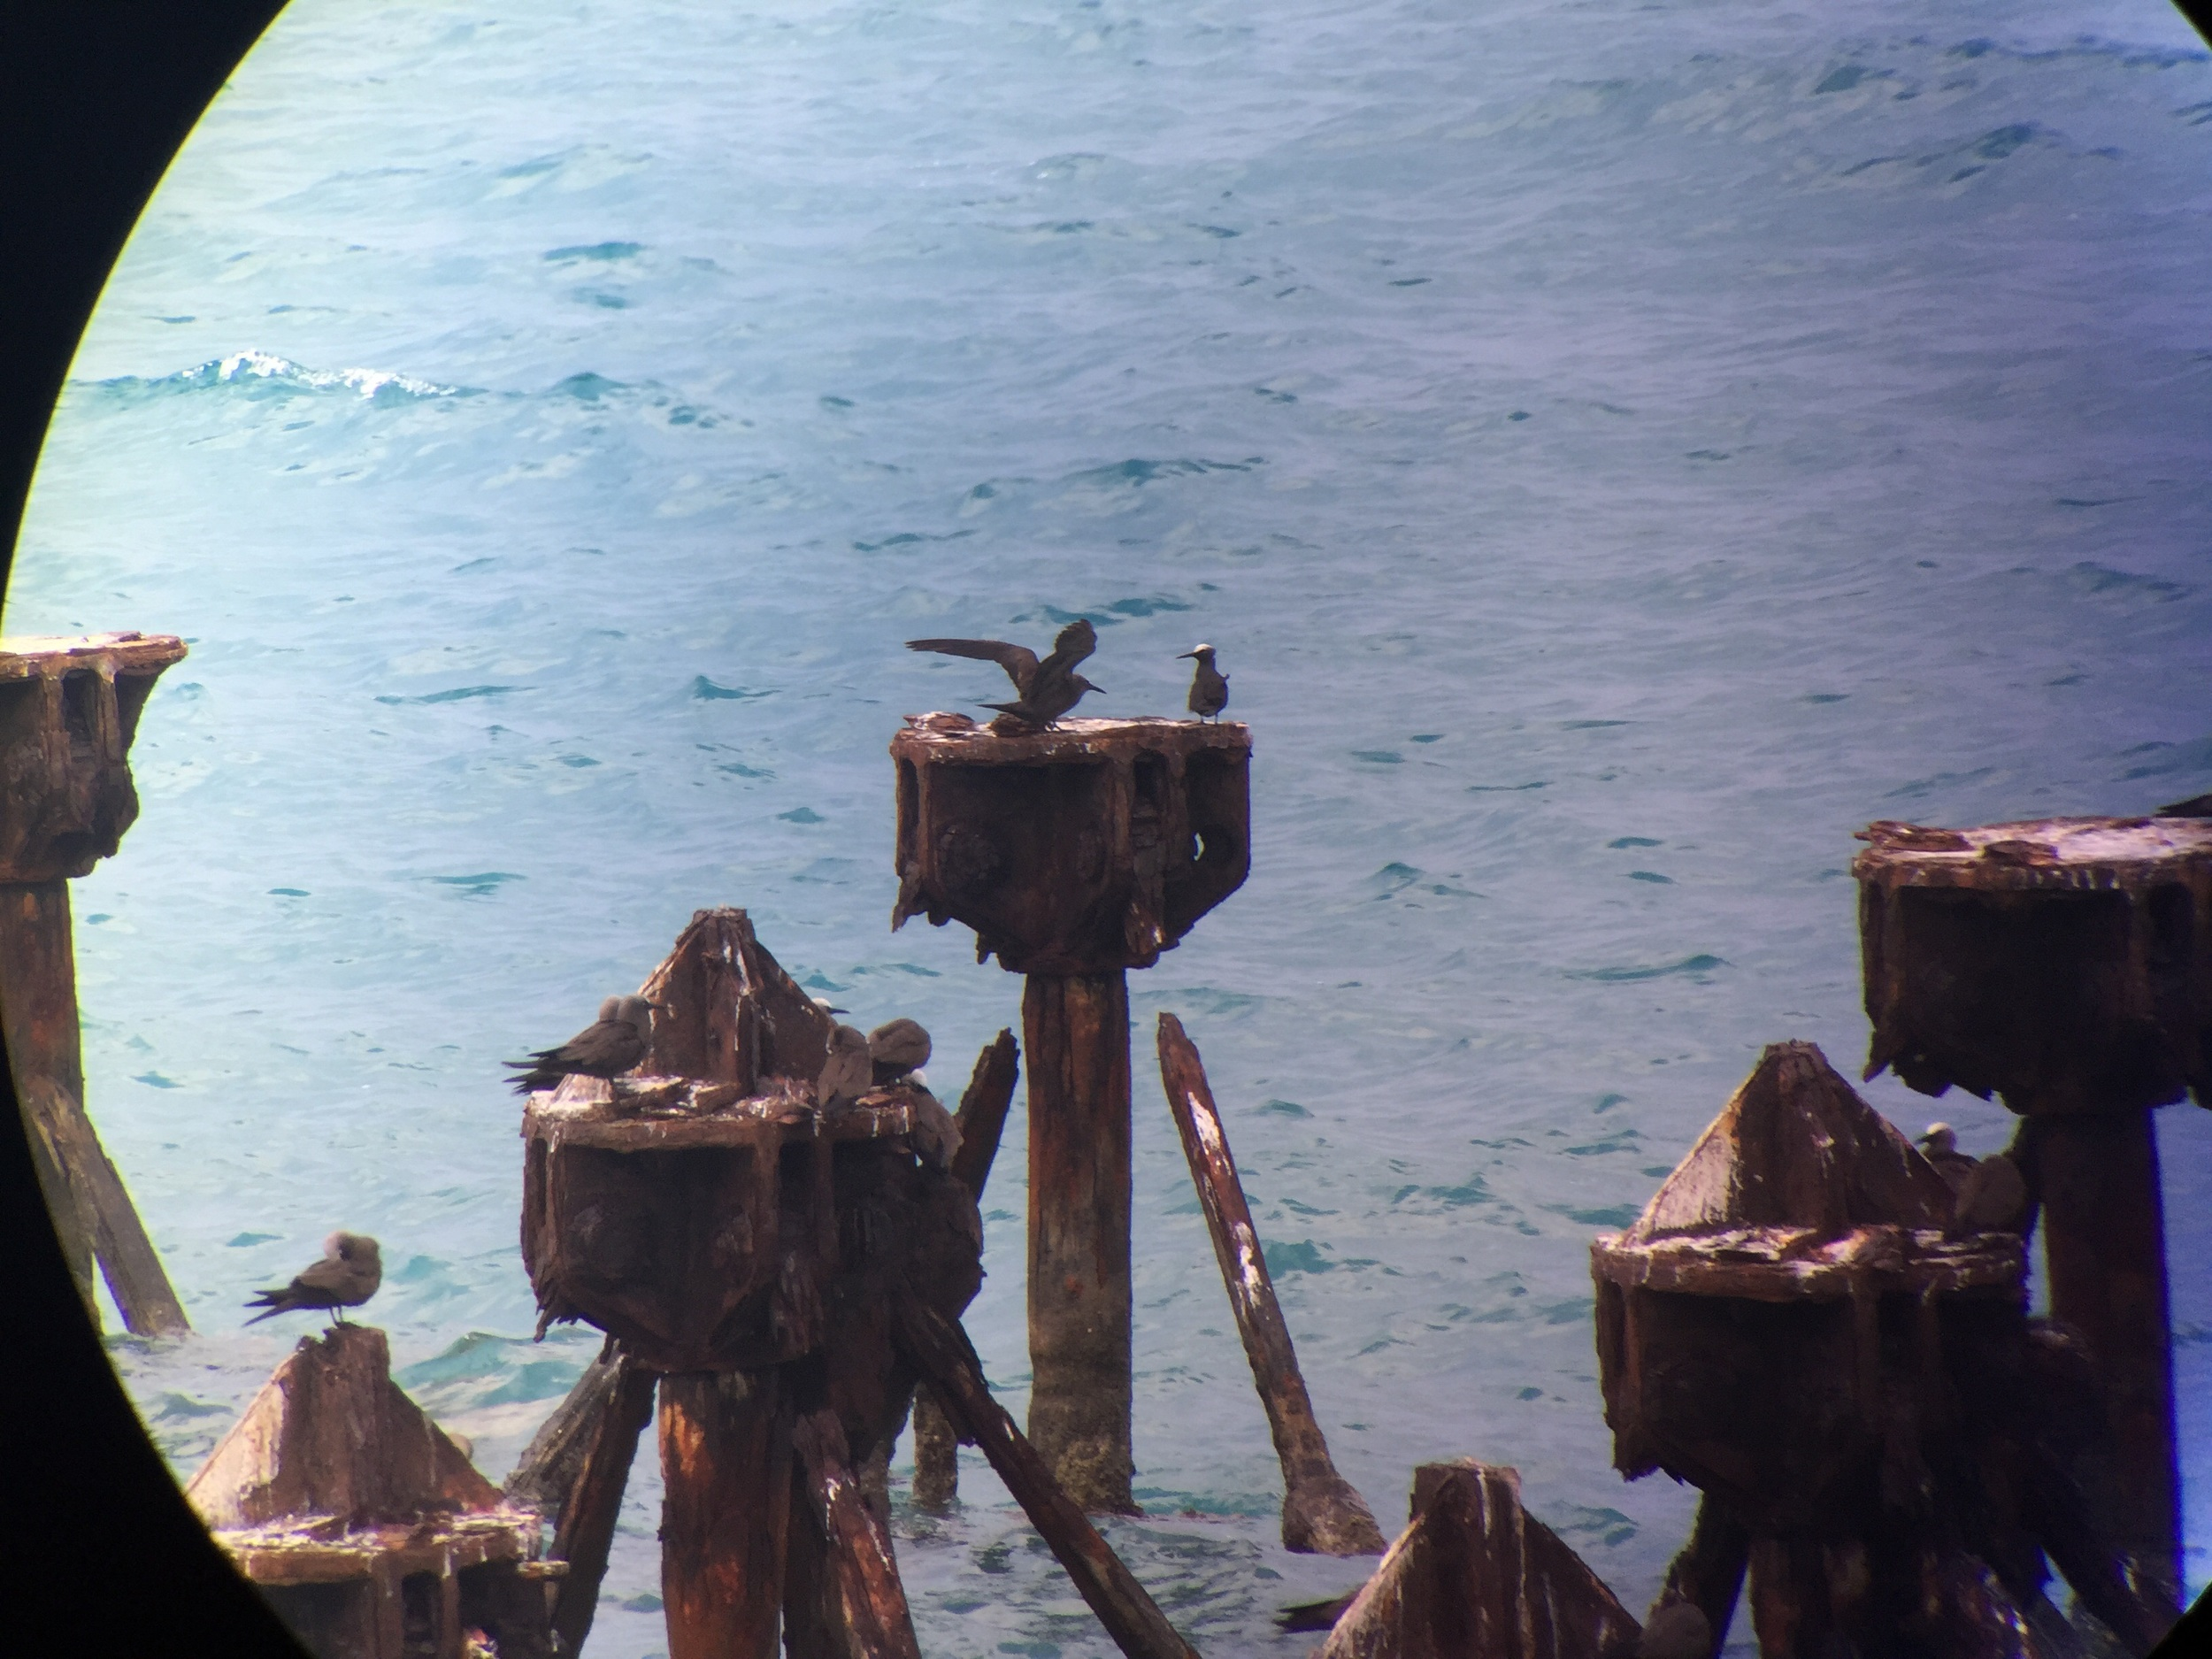 Black Noddy (right bird, furthest piling) digiscoped with iPhone